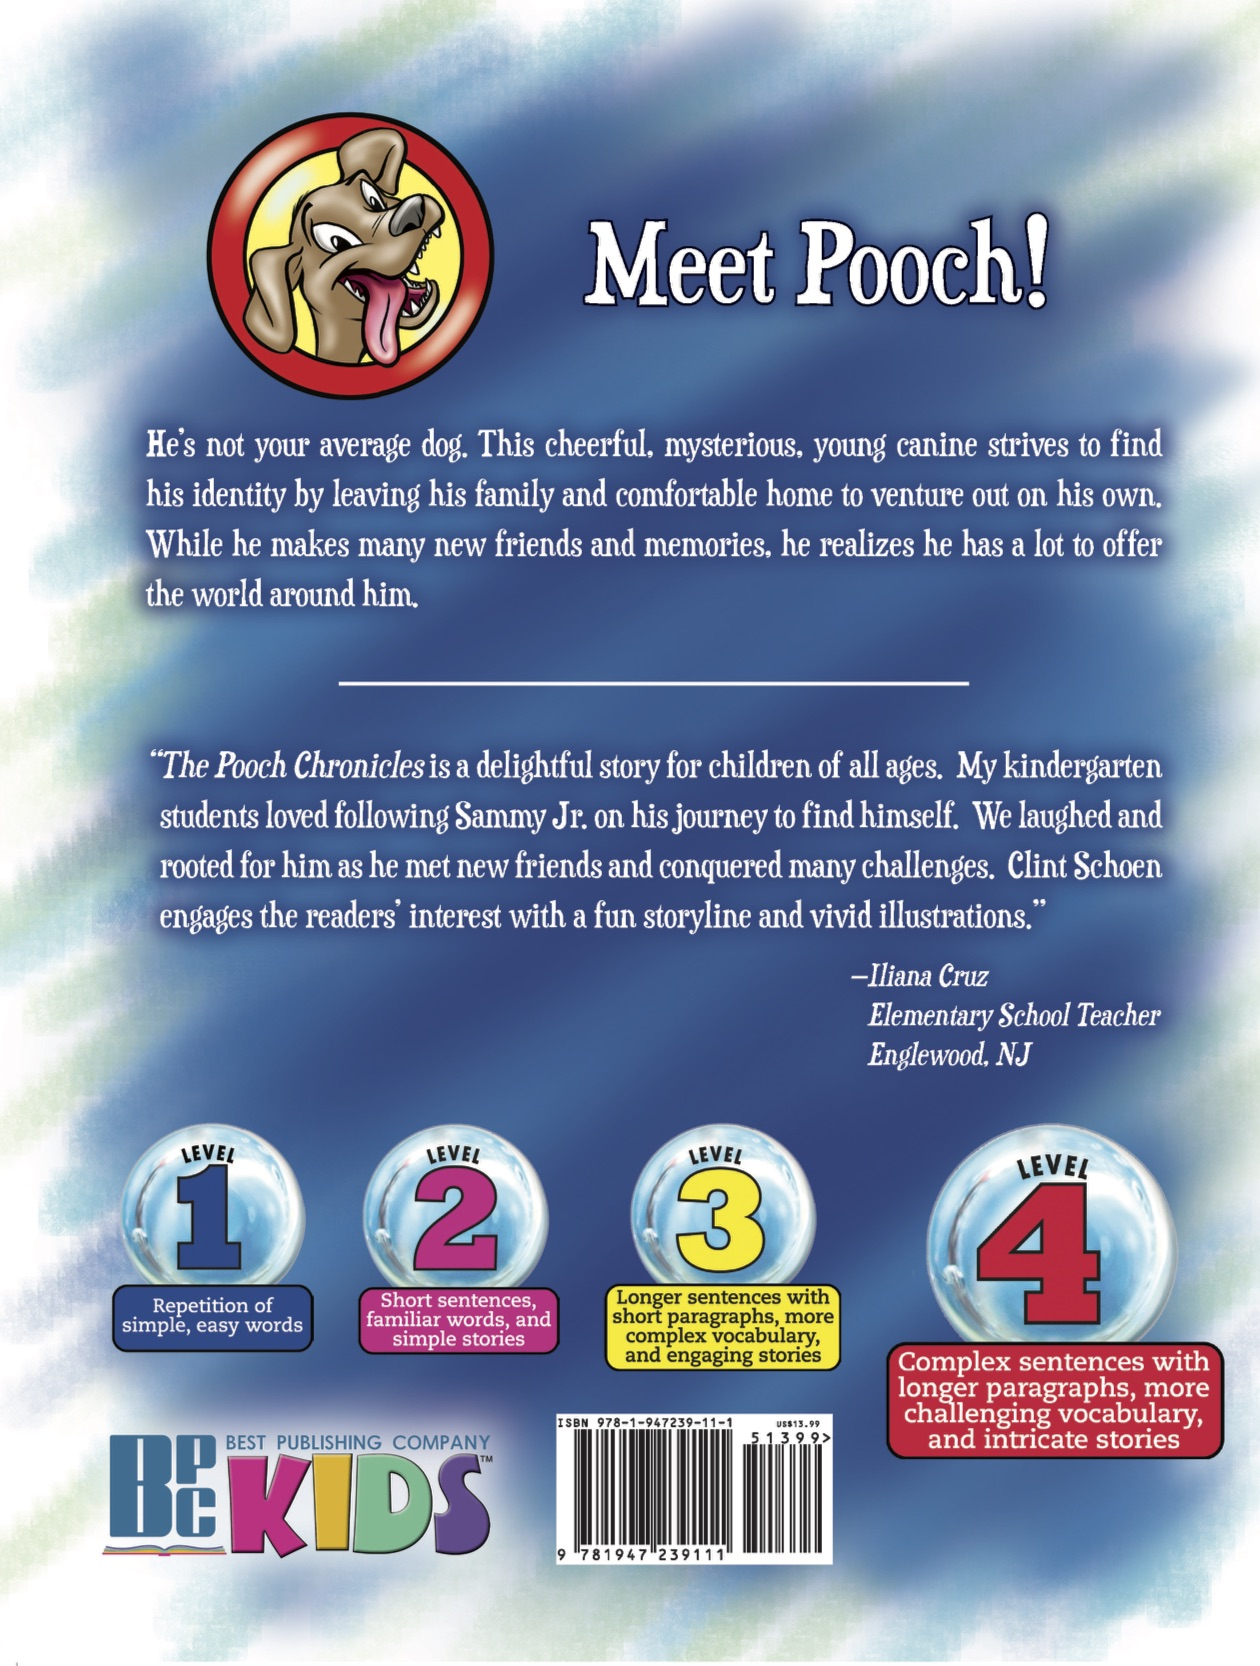 Pooch Chronicles back cover